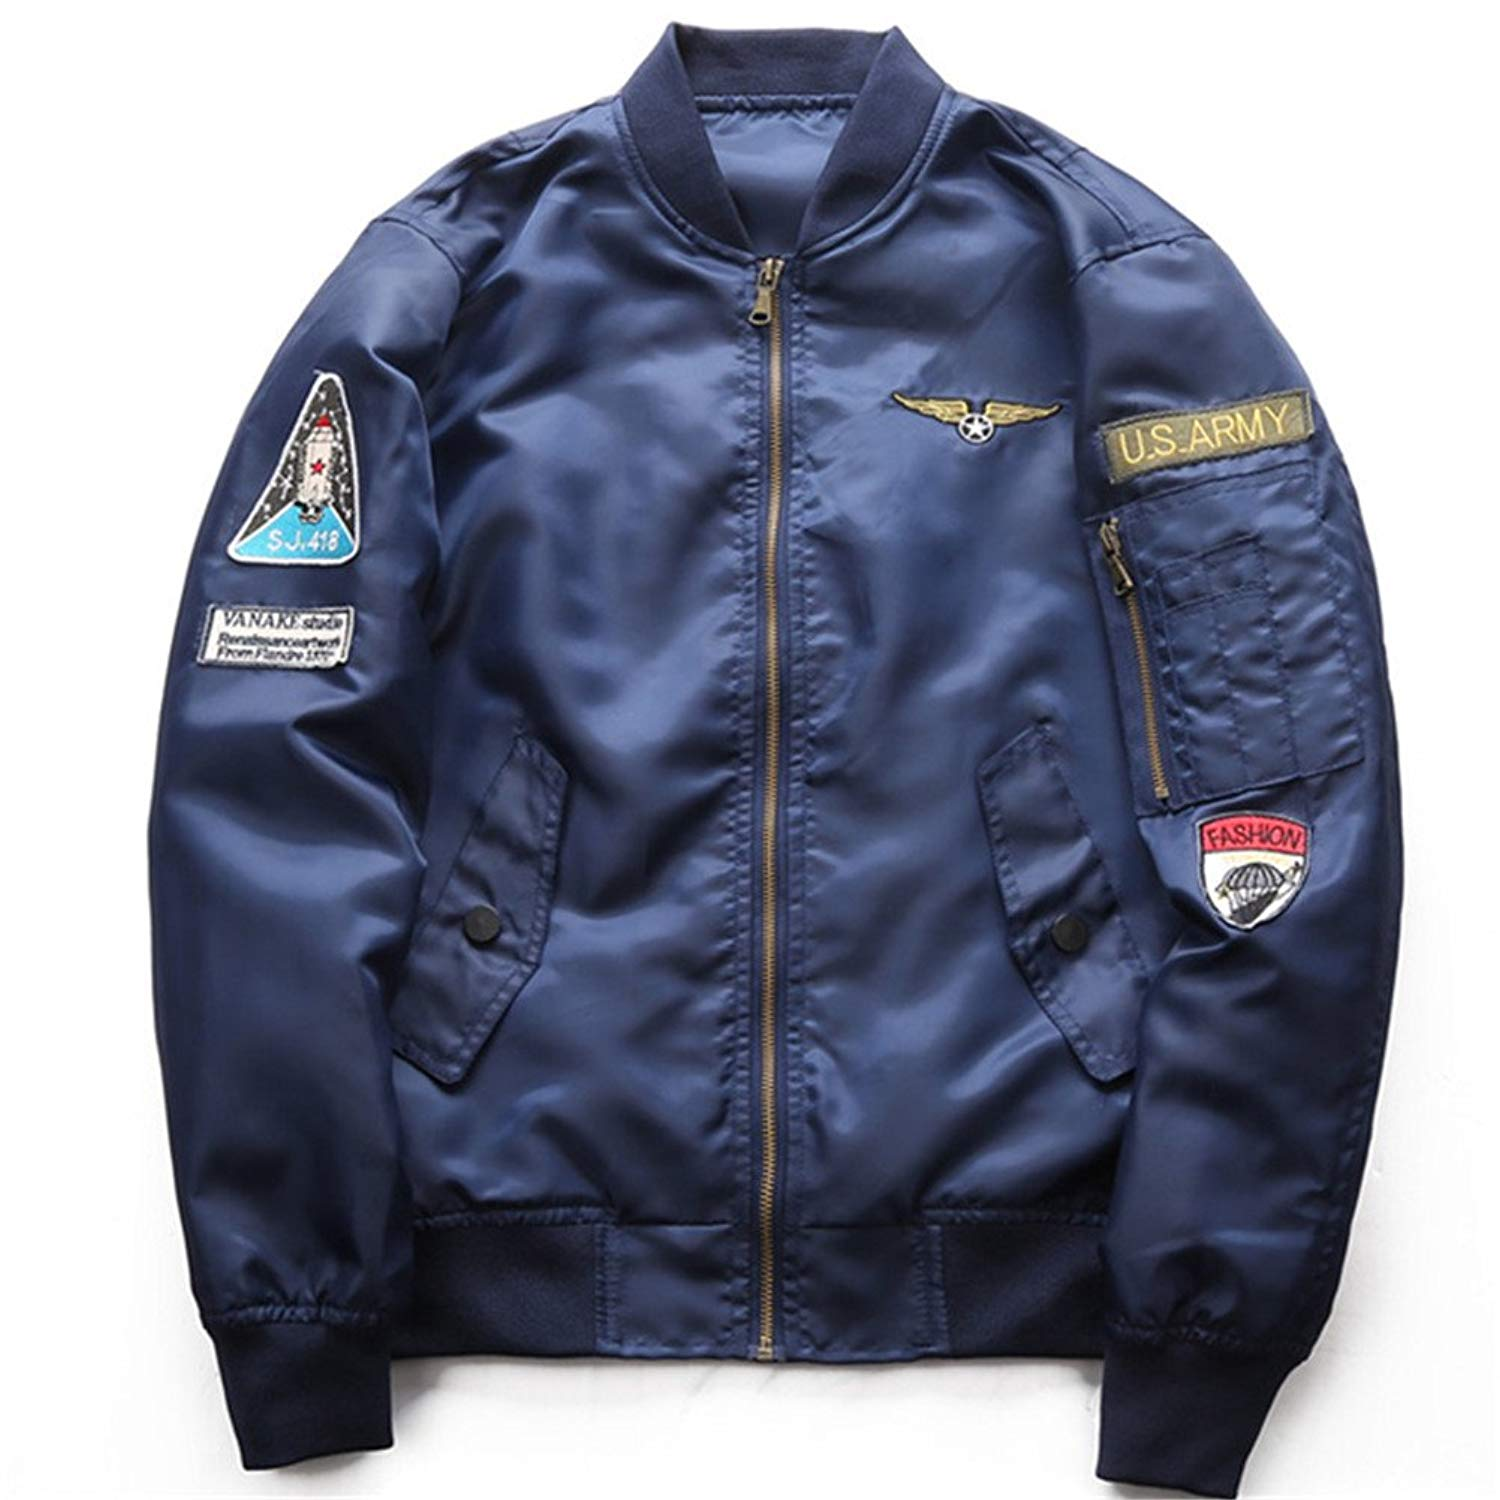 67f8e2a6c Cheap Air Force 1 Jacket, find Air Force 1 Jacket deals on line at ...